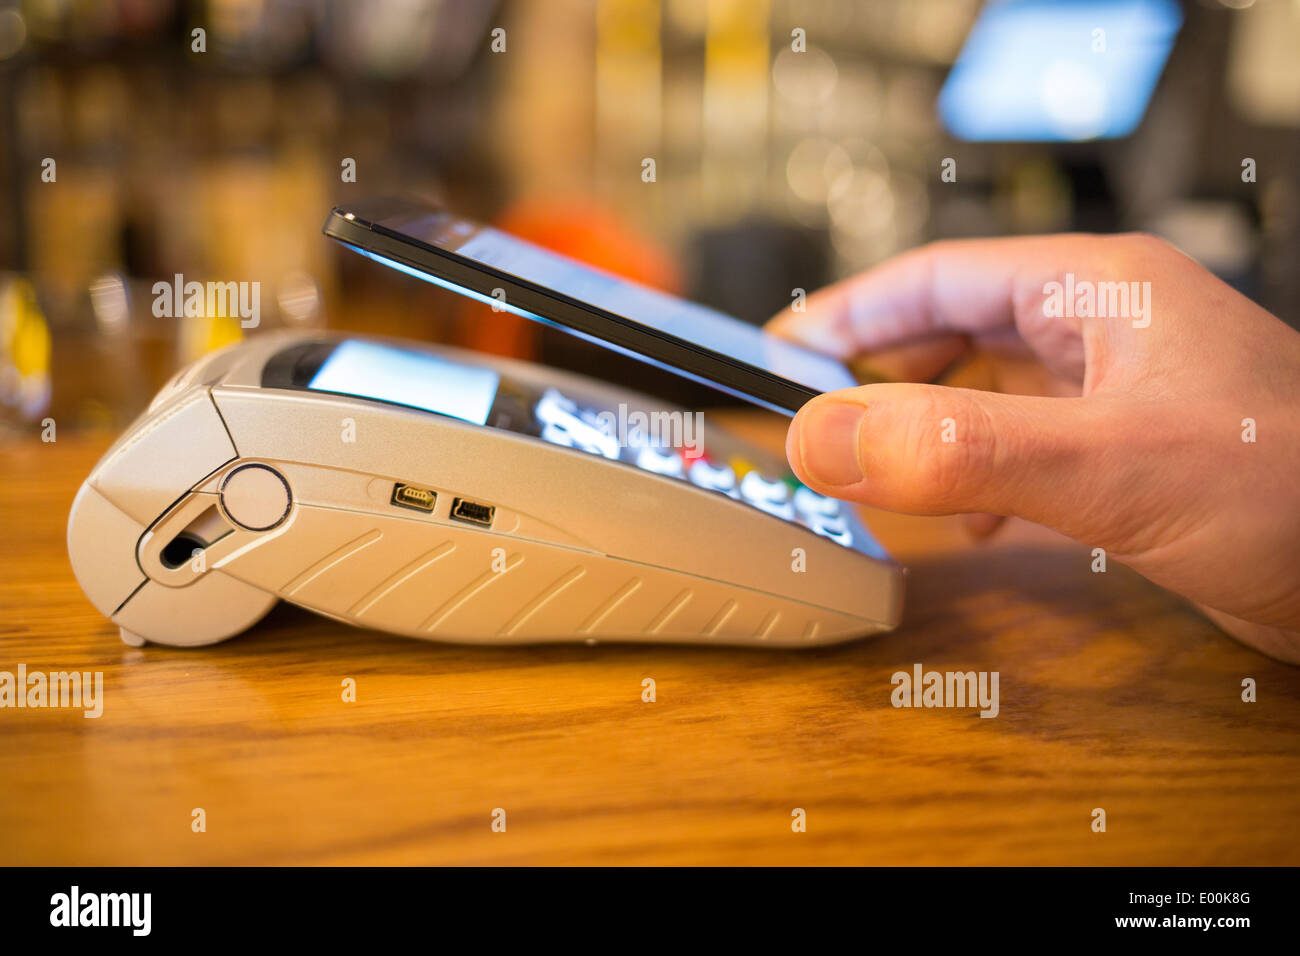 Male hand smartphone wallet payment shop - Stock Image